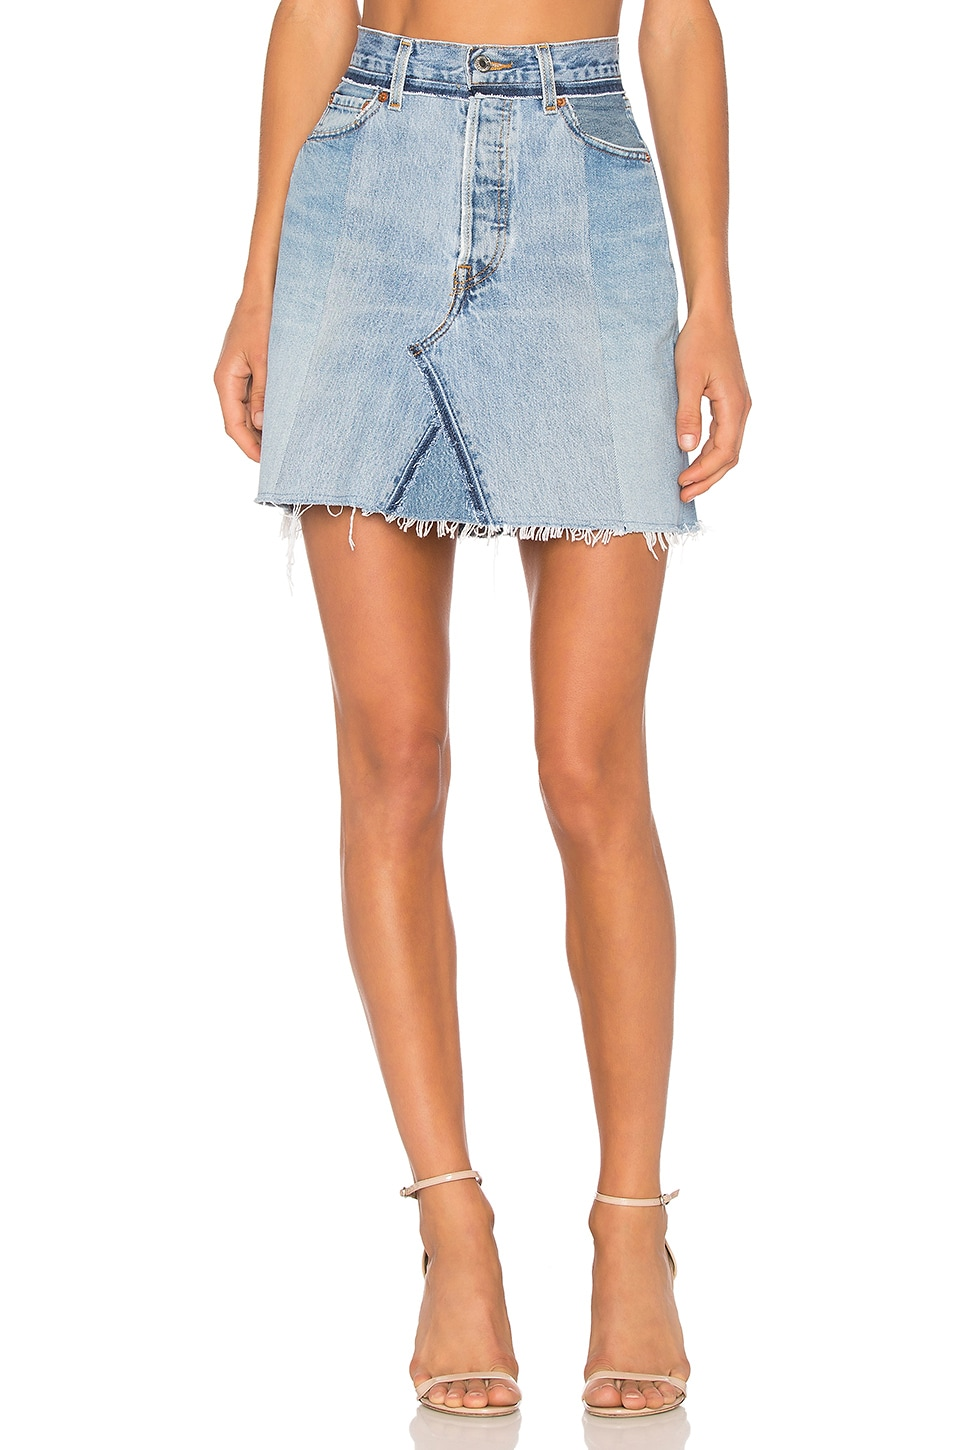 RE/DONE High Waisted Mini Skirt in Seamed Indigo Denim